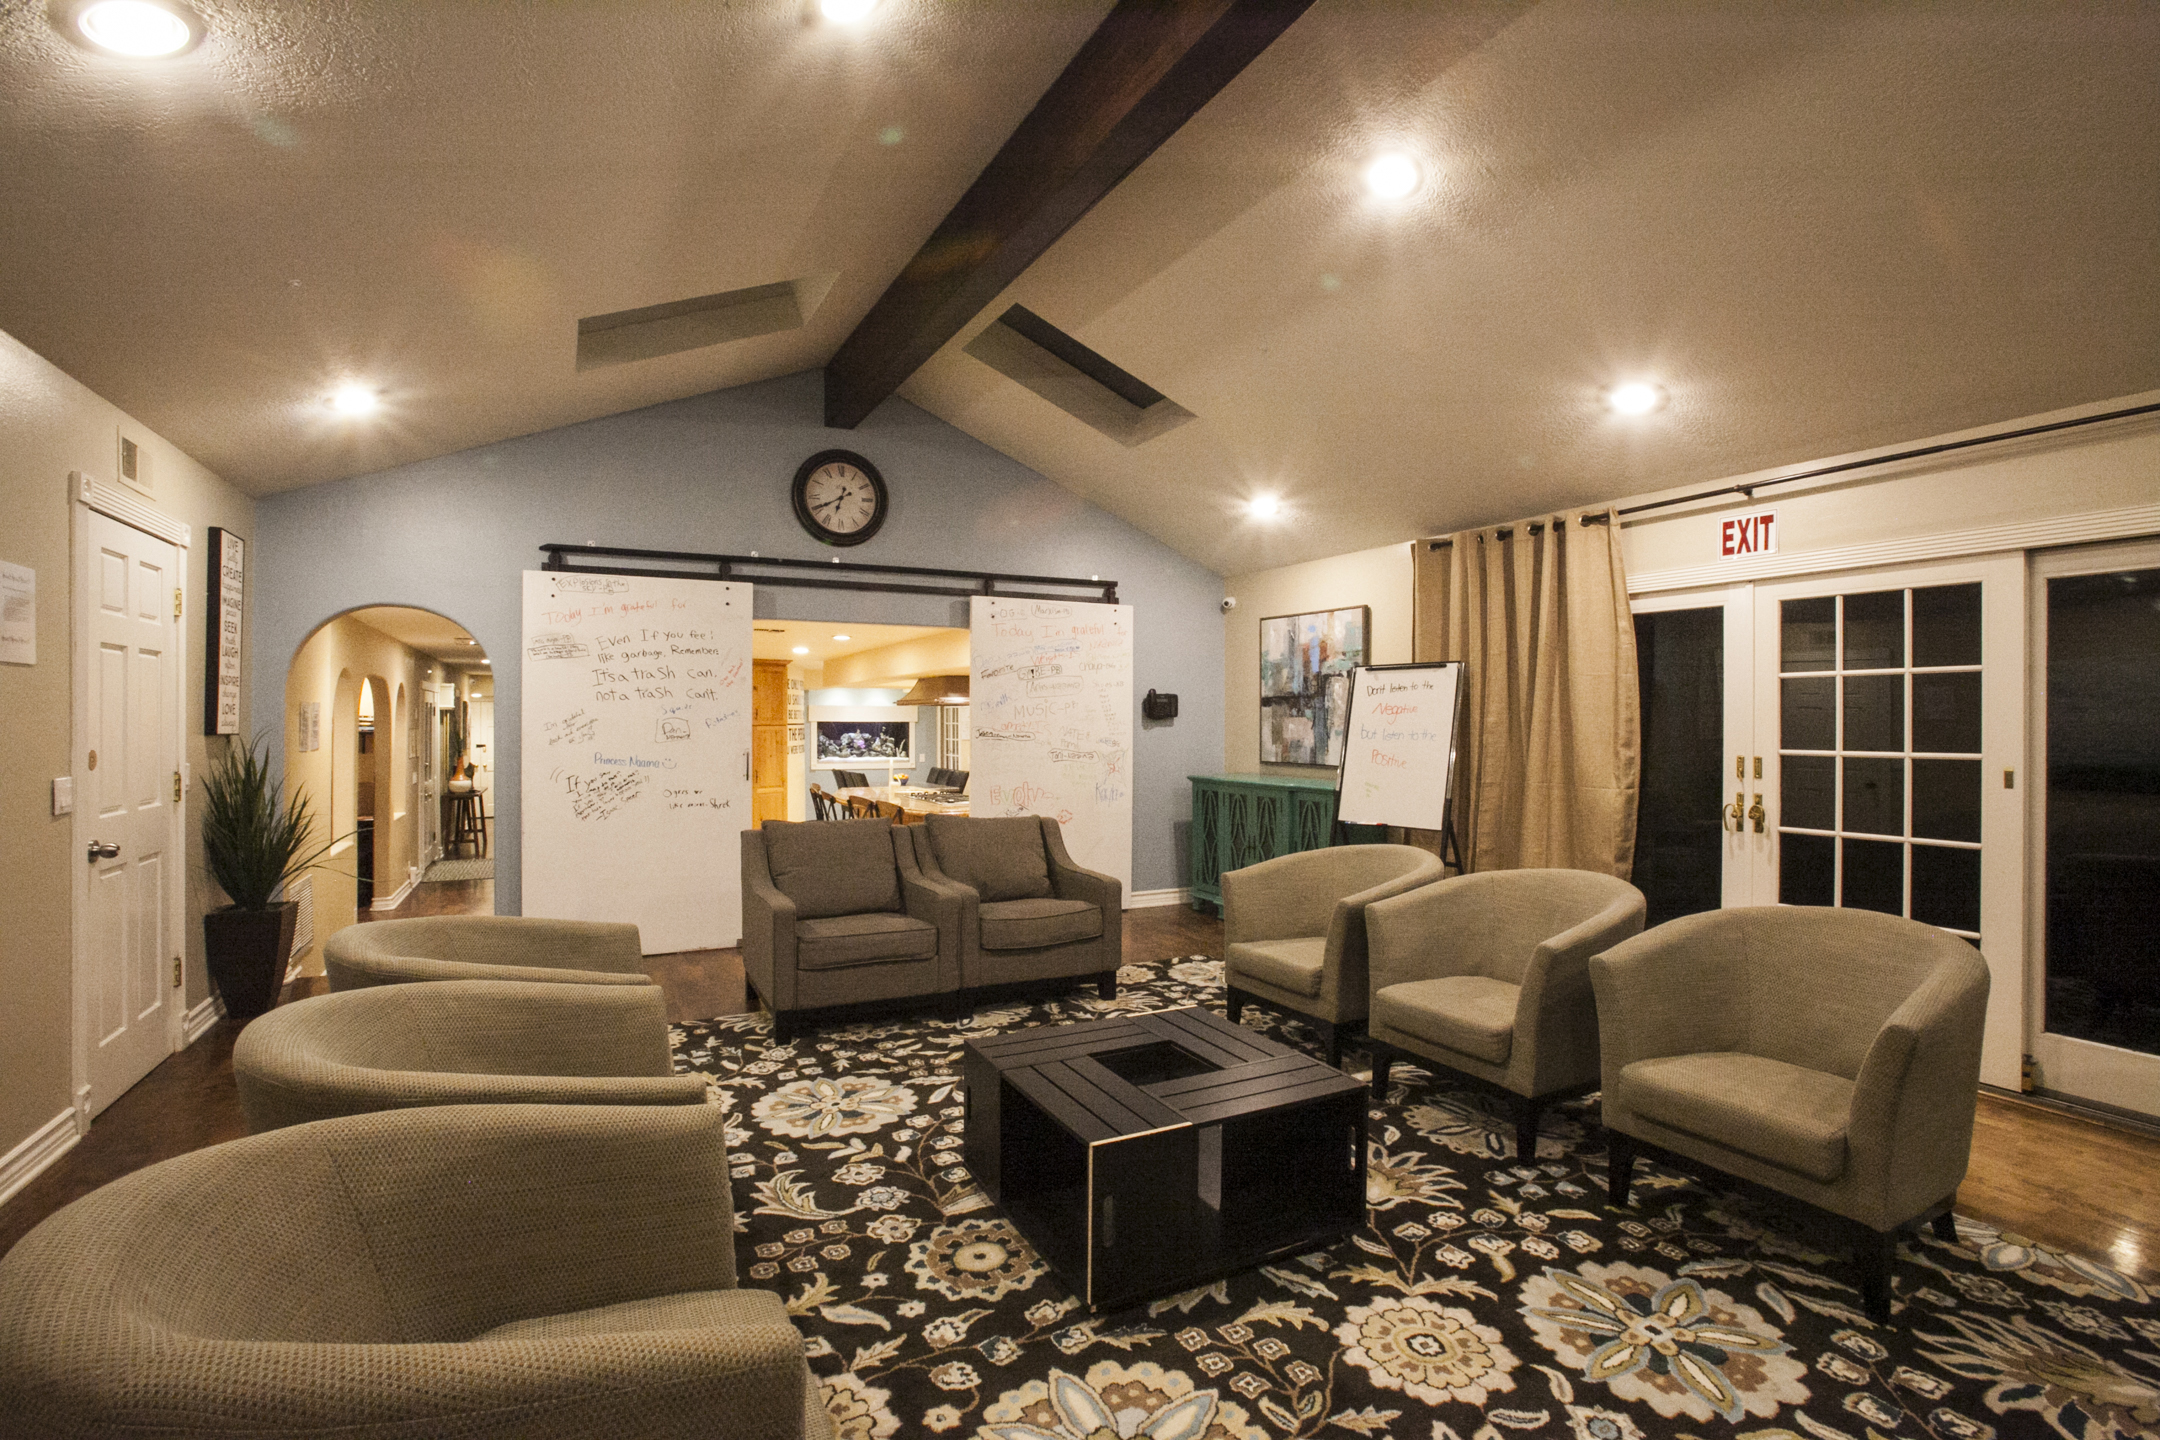 Business - Therapeutic   Evolve Treatment Centers